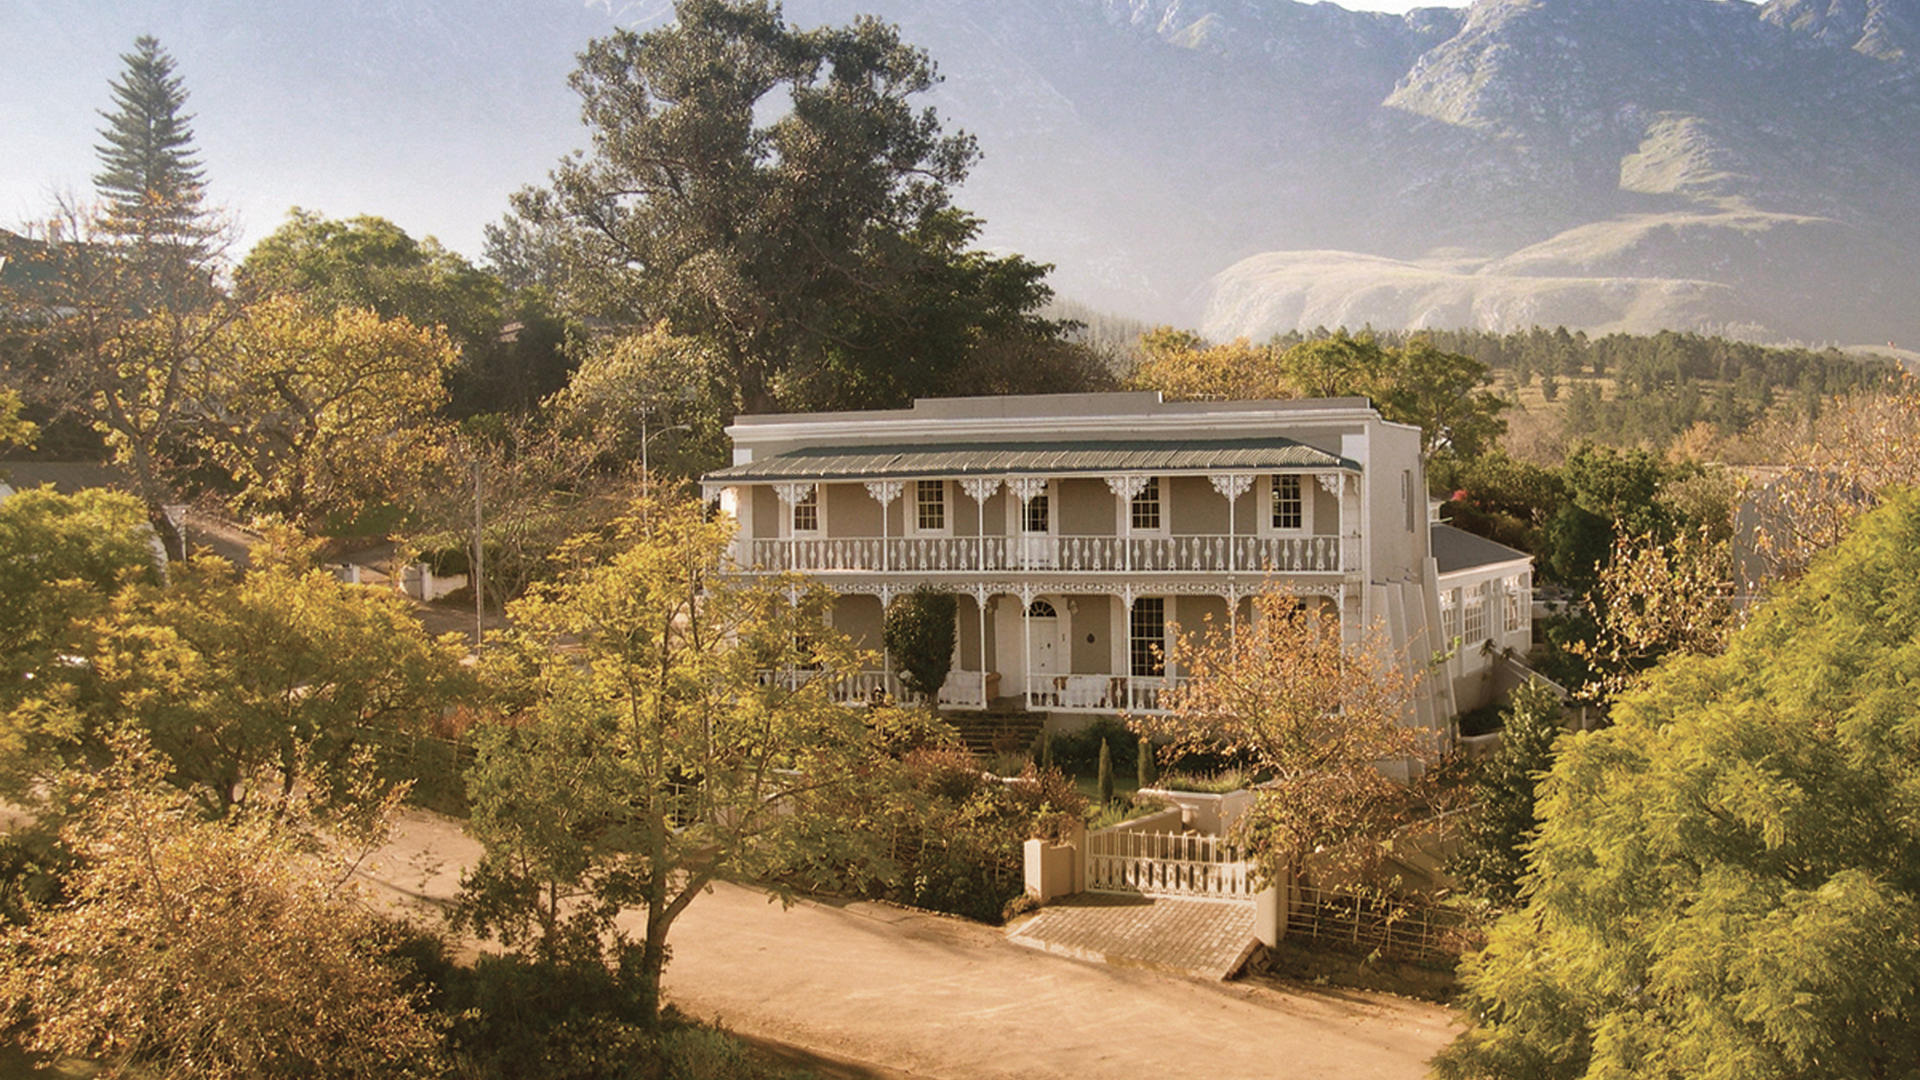 schoone_oordt_country_hotels_swellendam_south_africa4